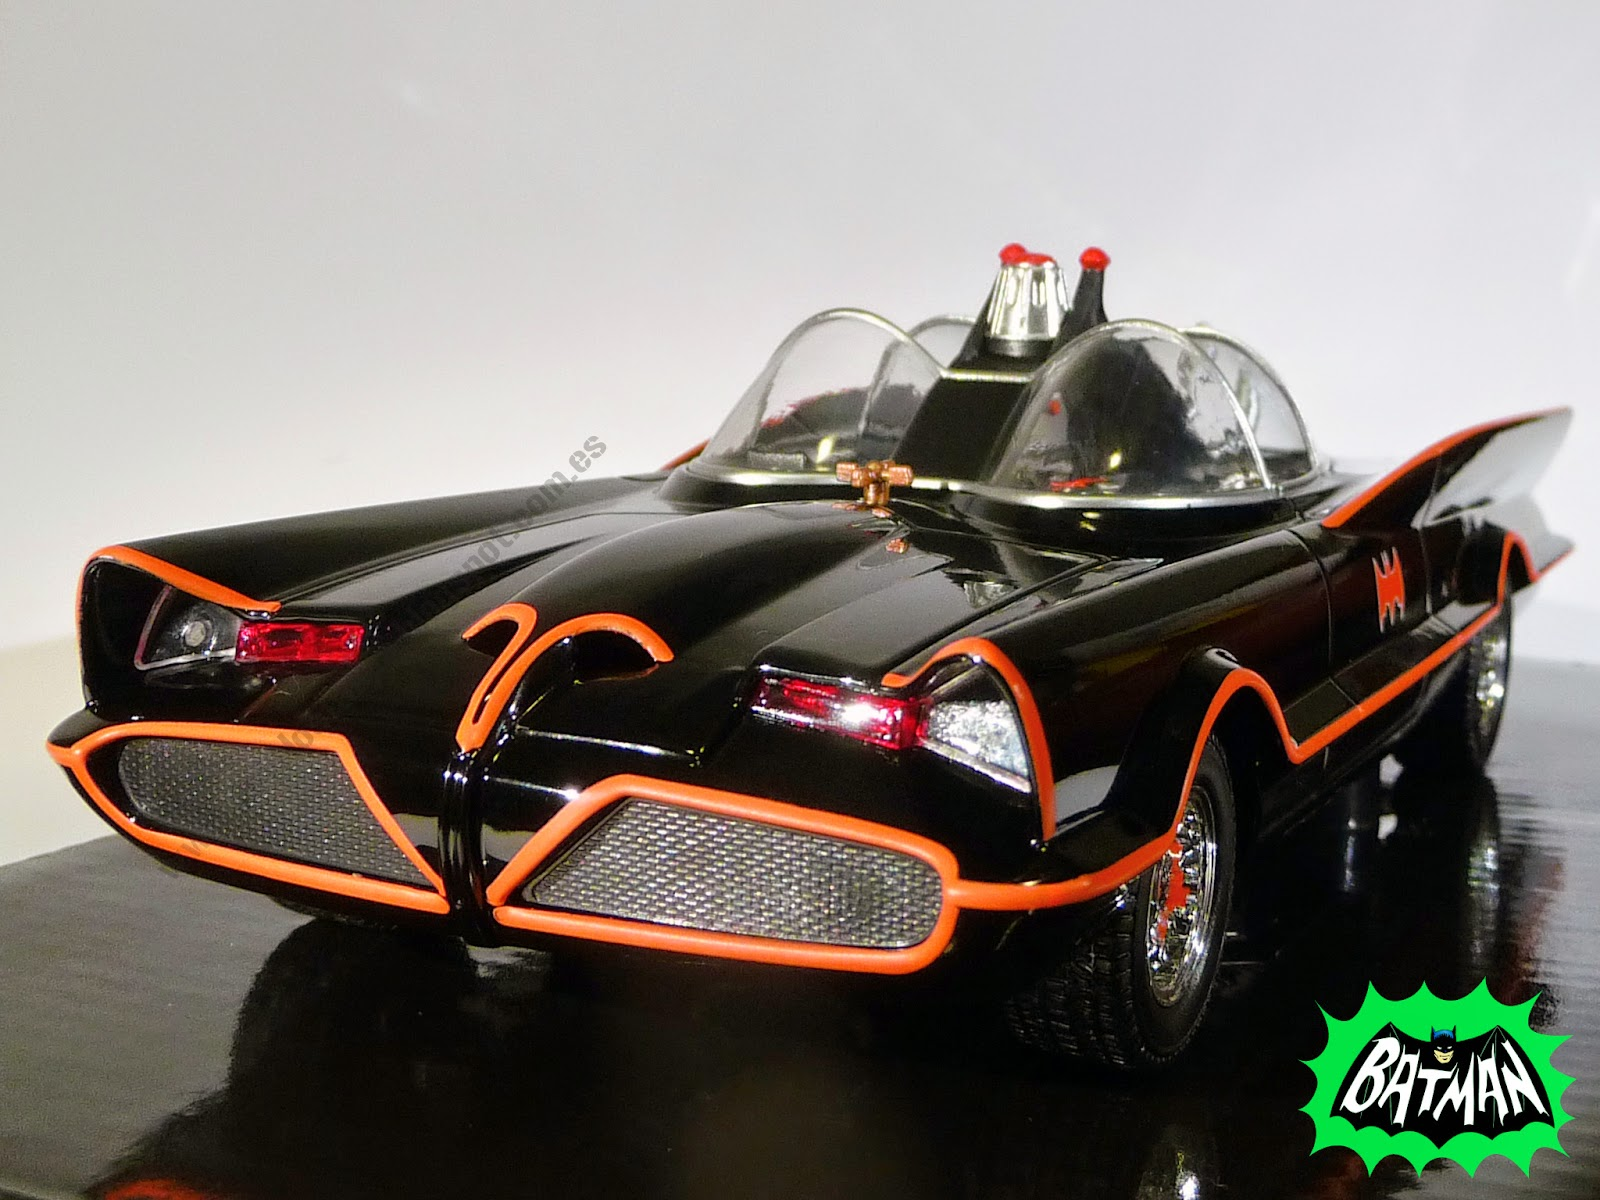 Hot Wheels Batman Batmobile 1966 TV Show 1:24 (2014)